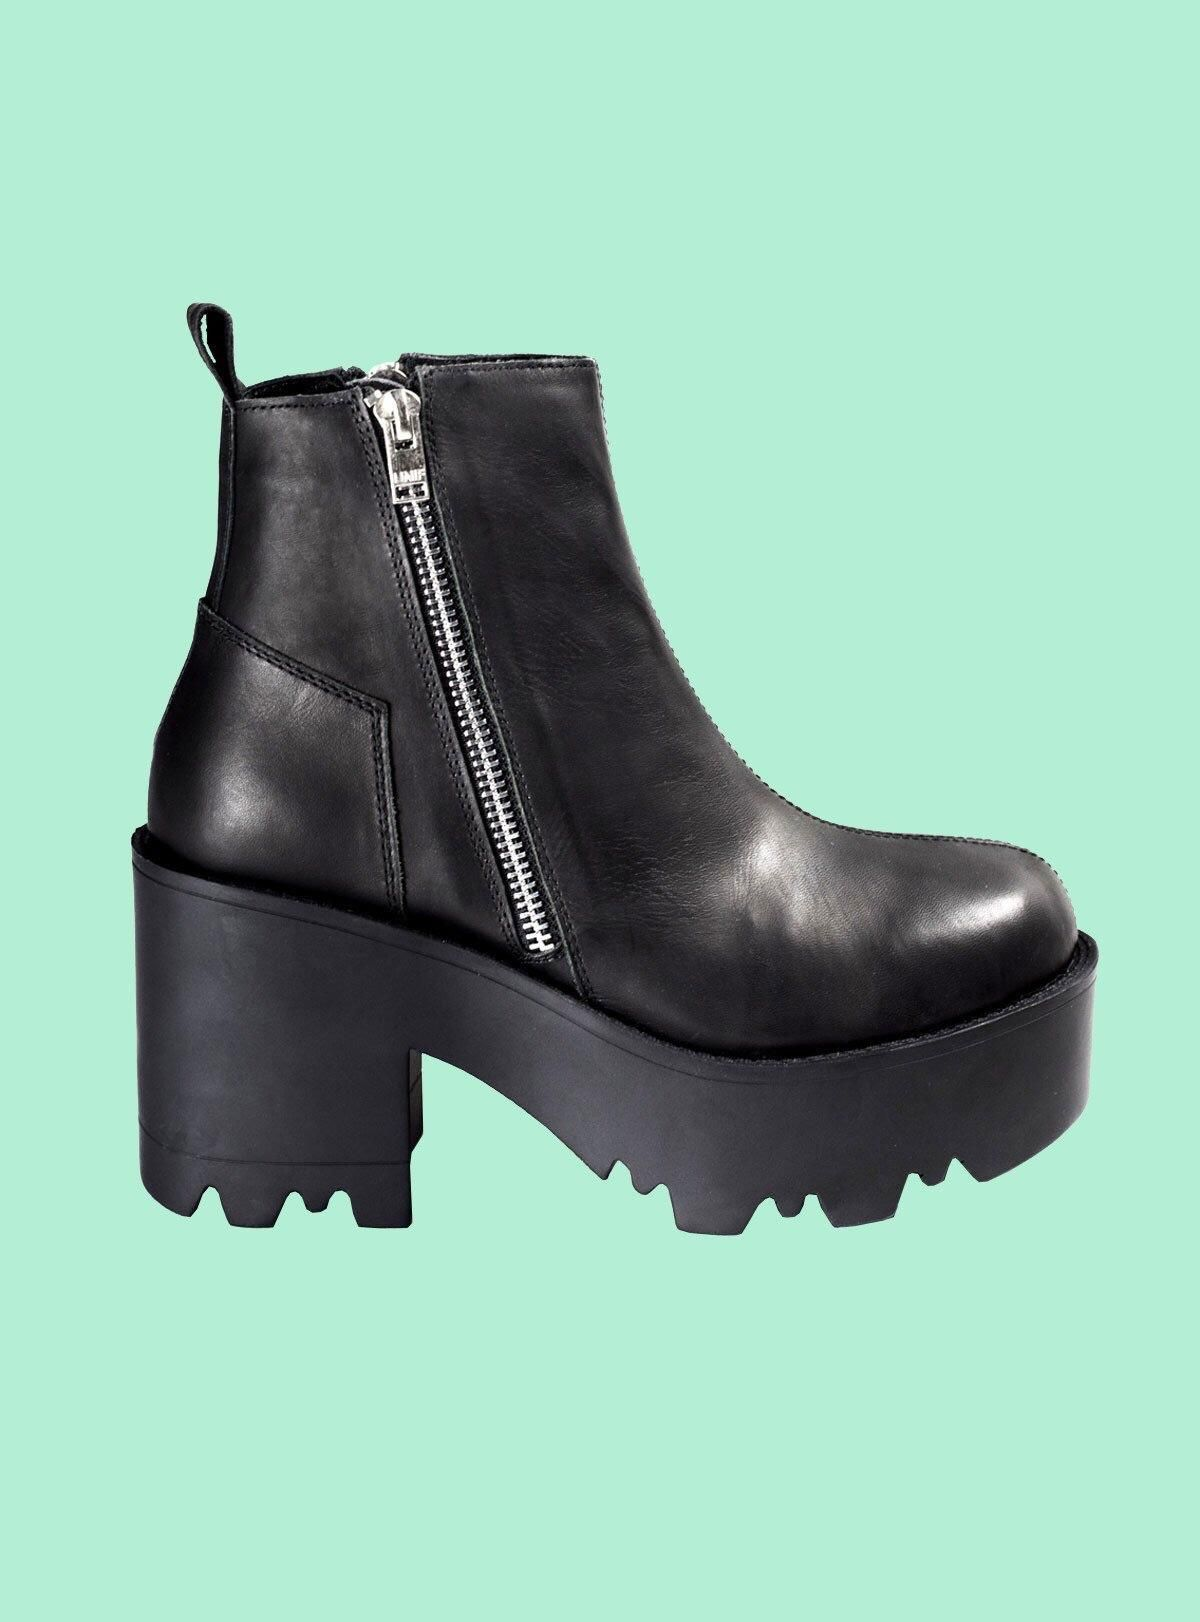 b9050b25896 Any similar shoes or the exact as UNIF rival boots? Thanks! | Shoes ...